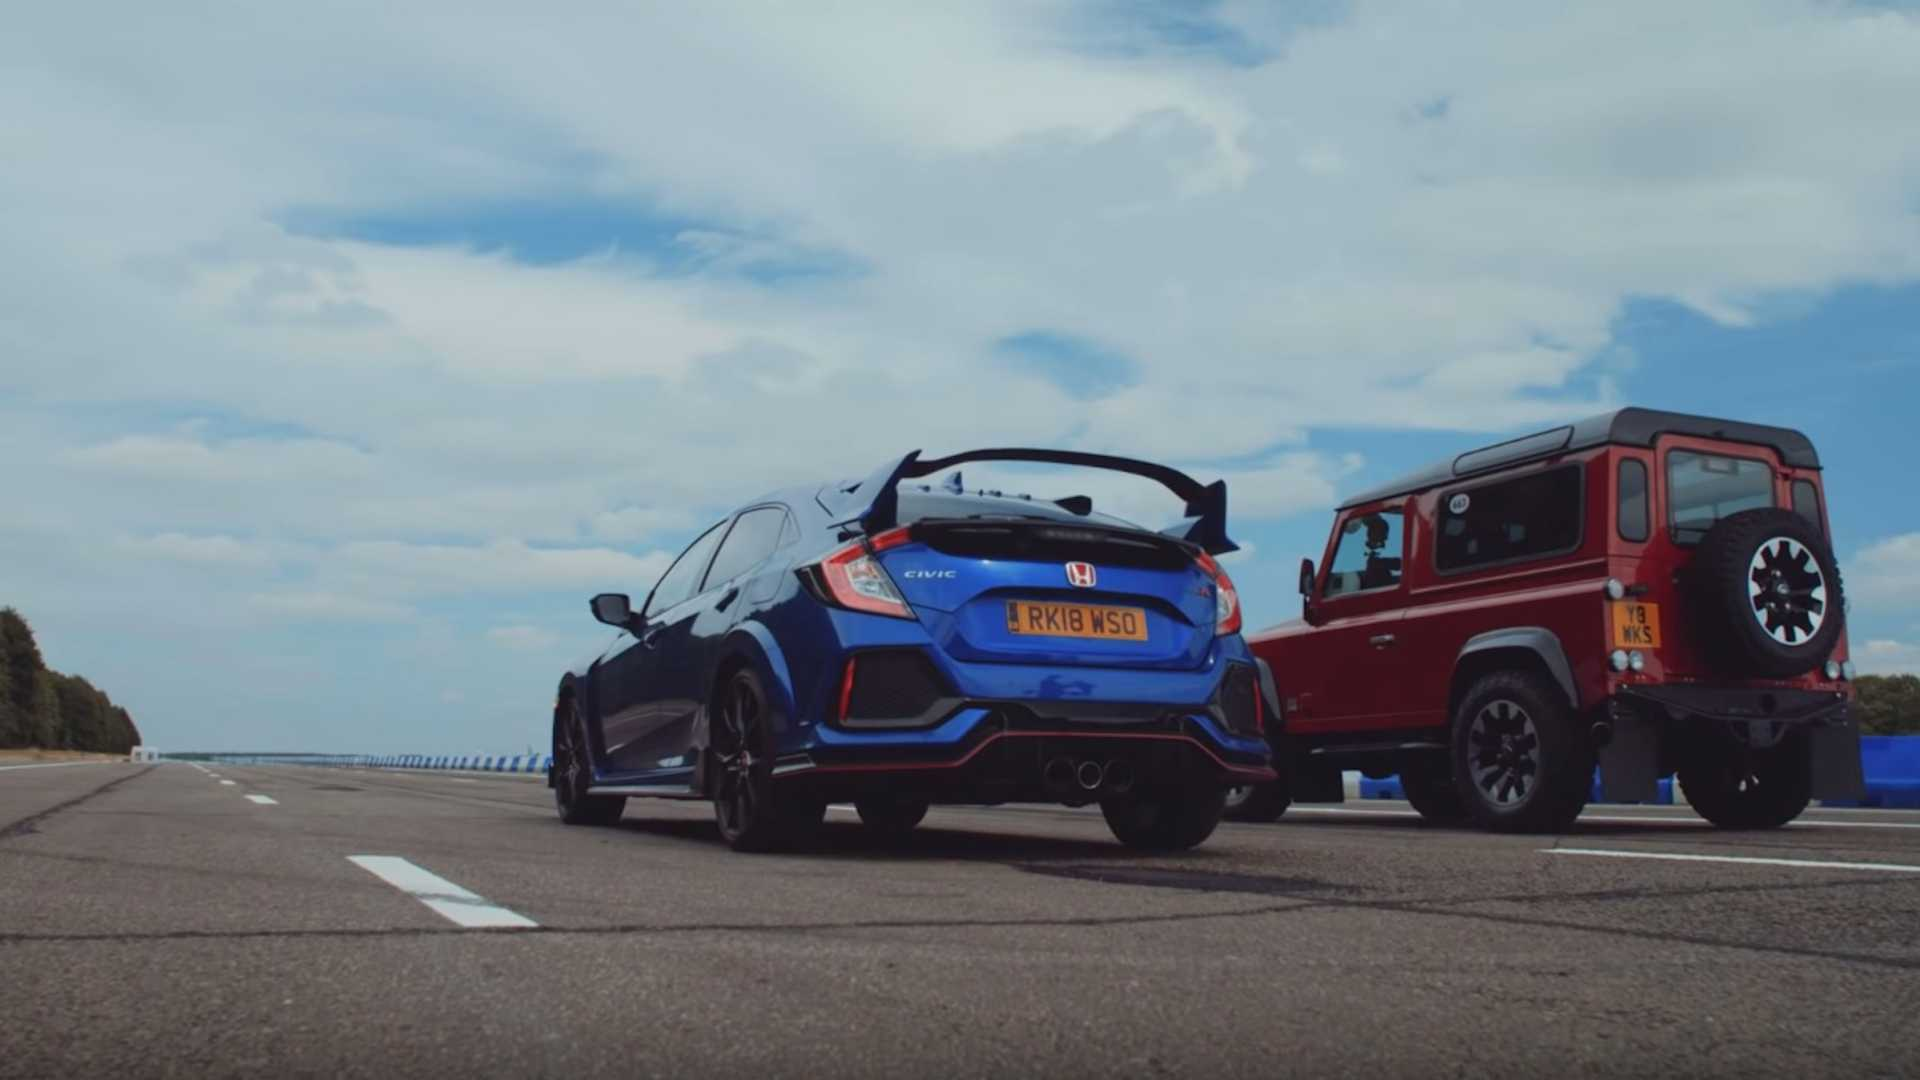 Civic Type R Fights Defender Works V8 In Unexpected Drag Race